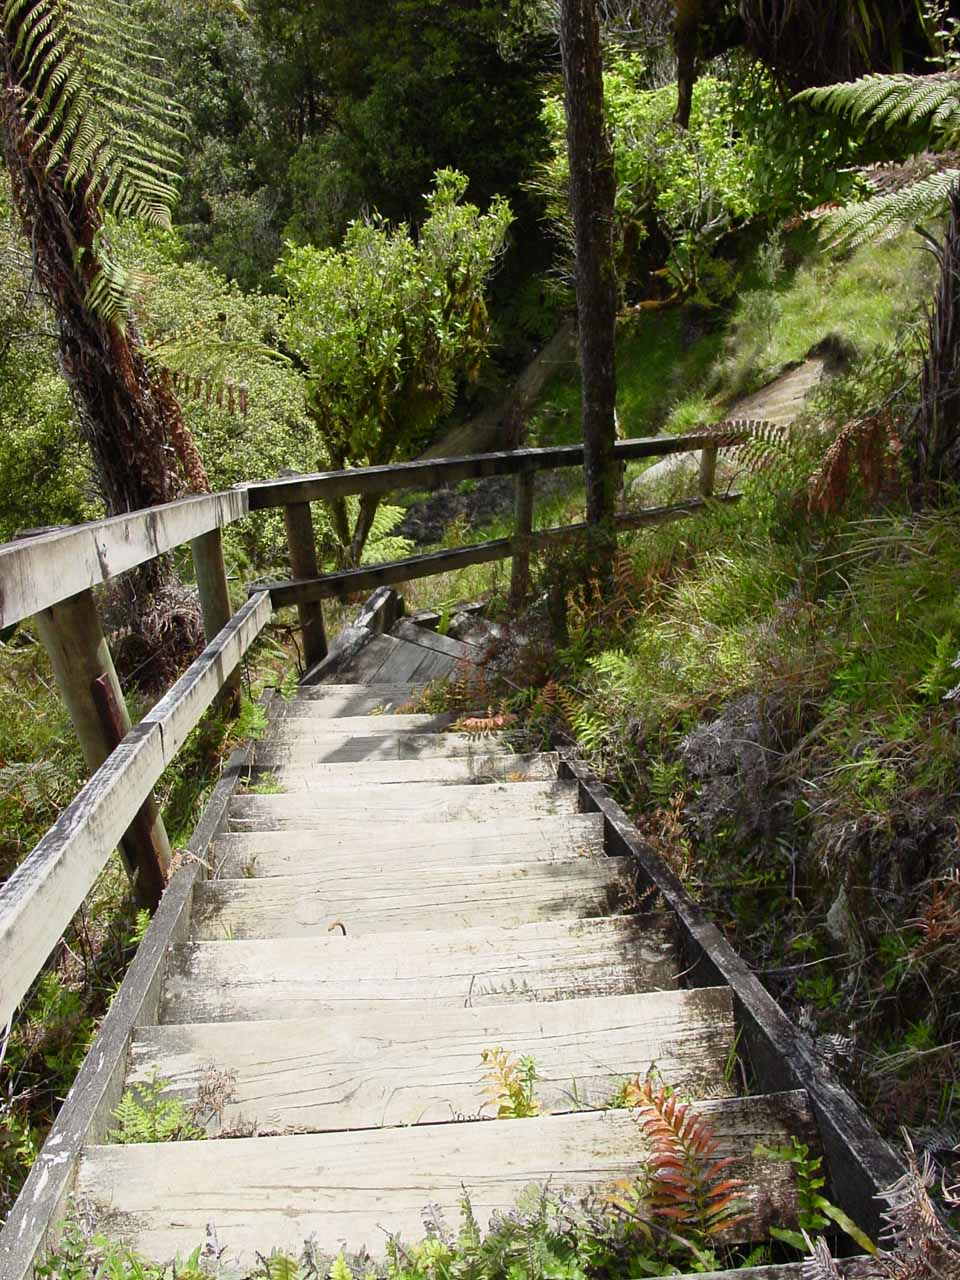 Going down the wooden steps to reach the Mt Damper Falls lookout platform